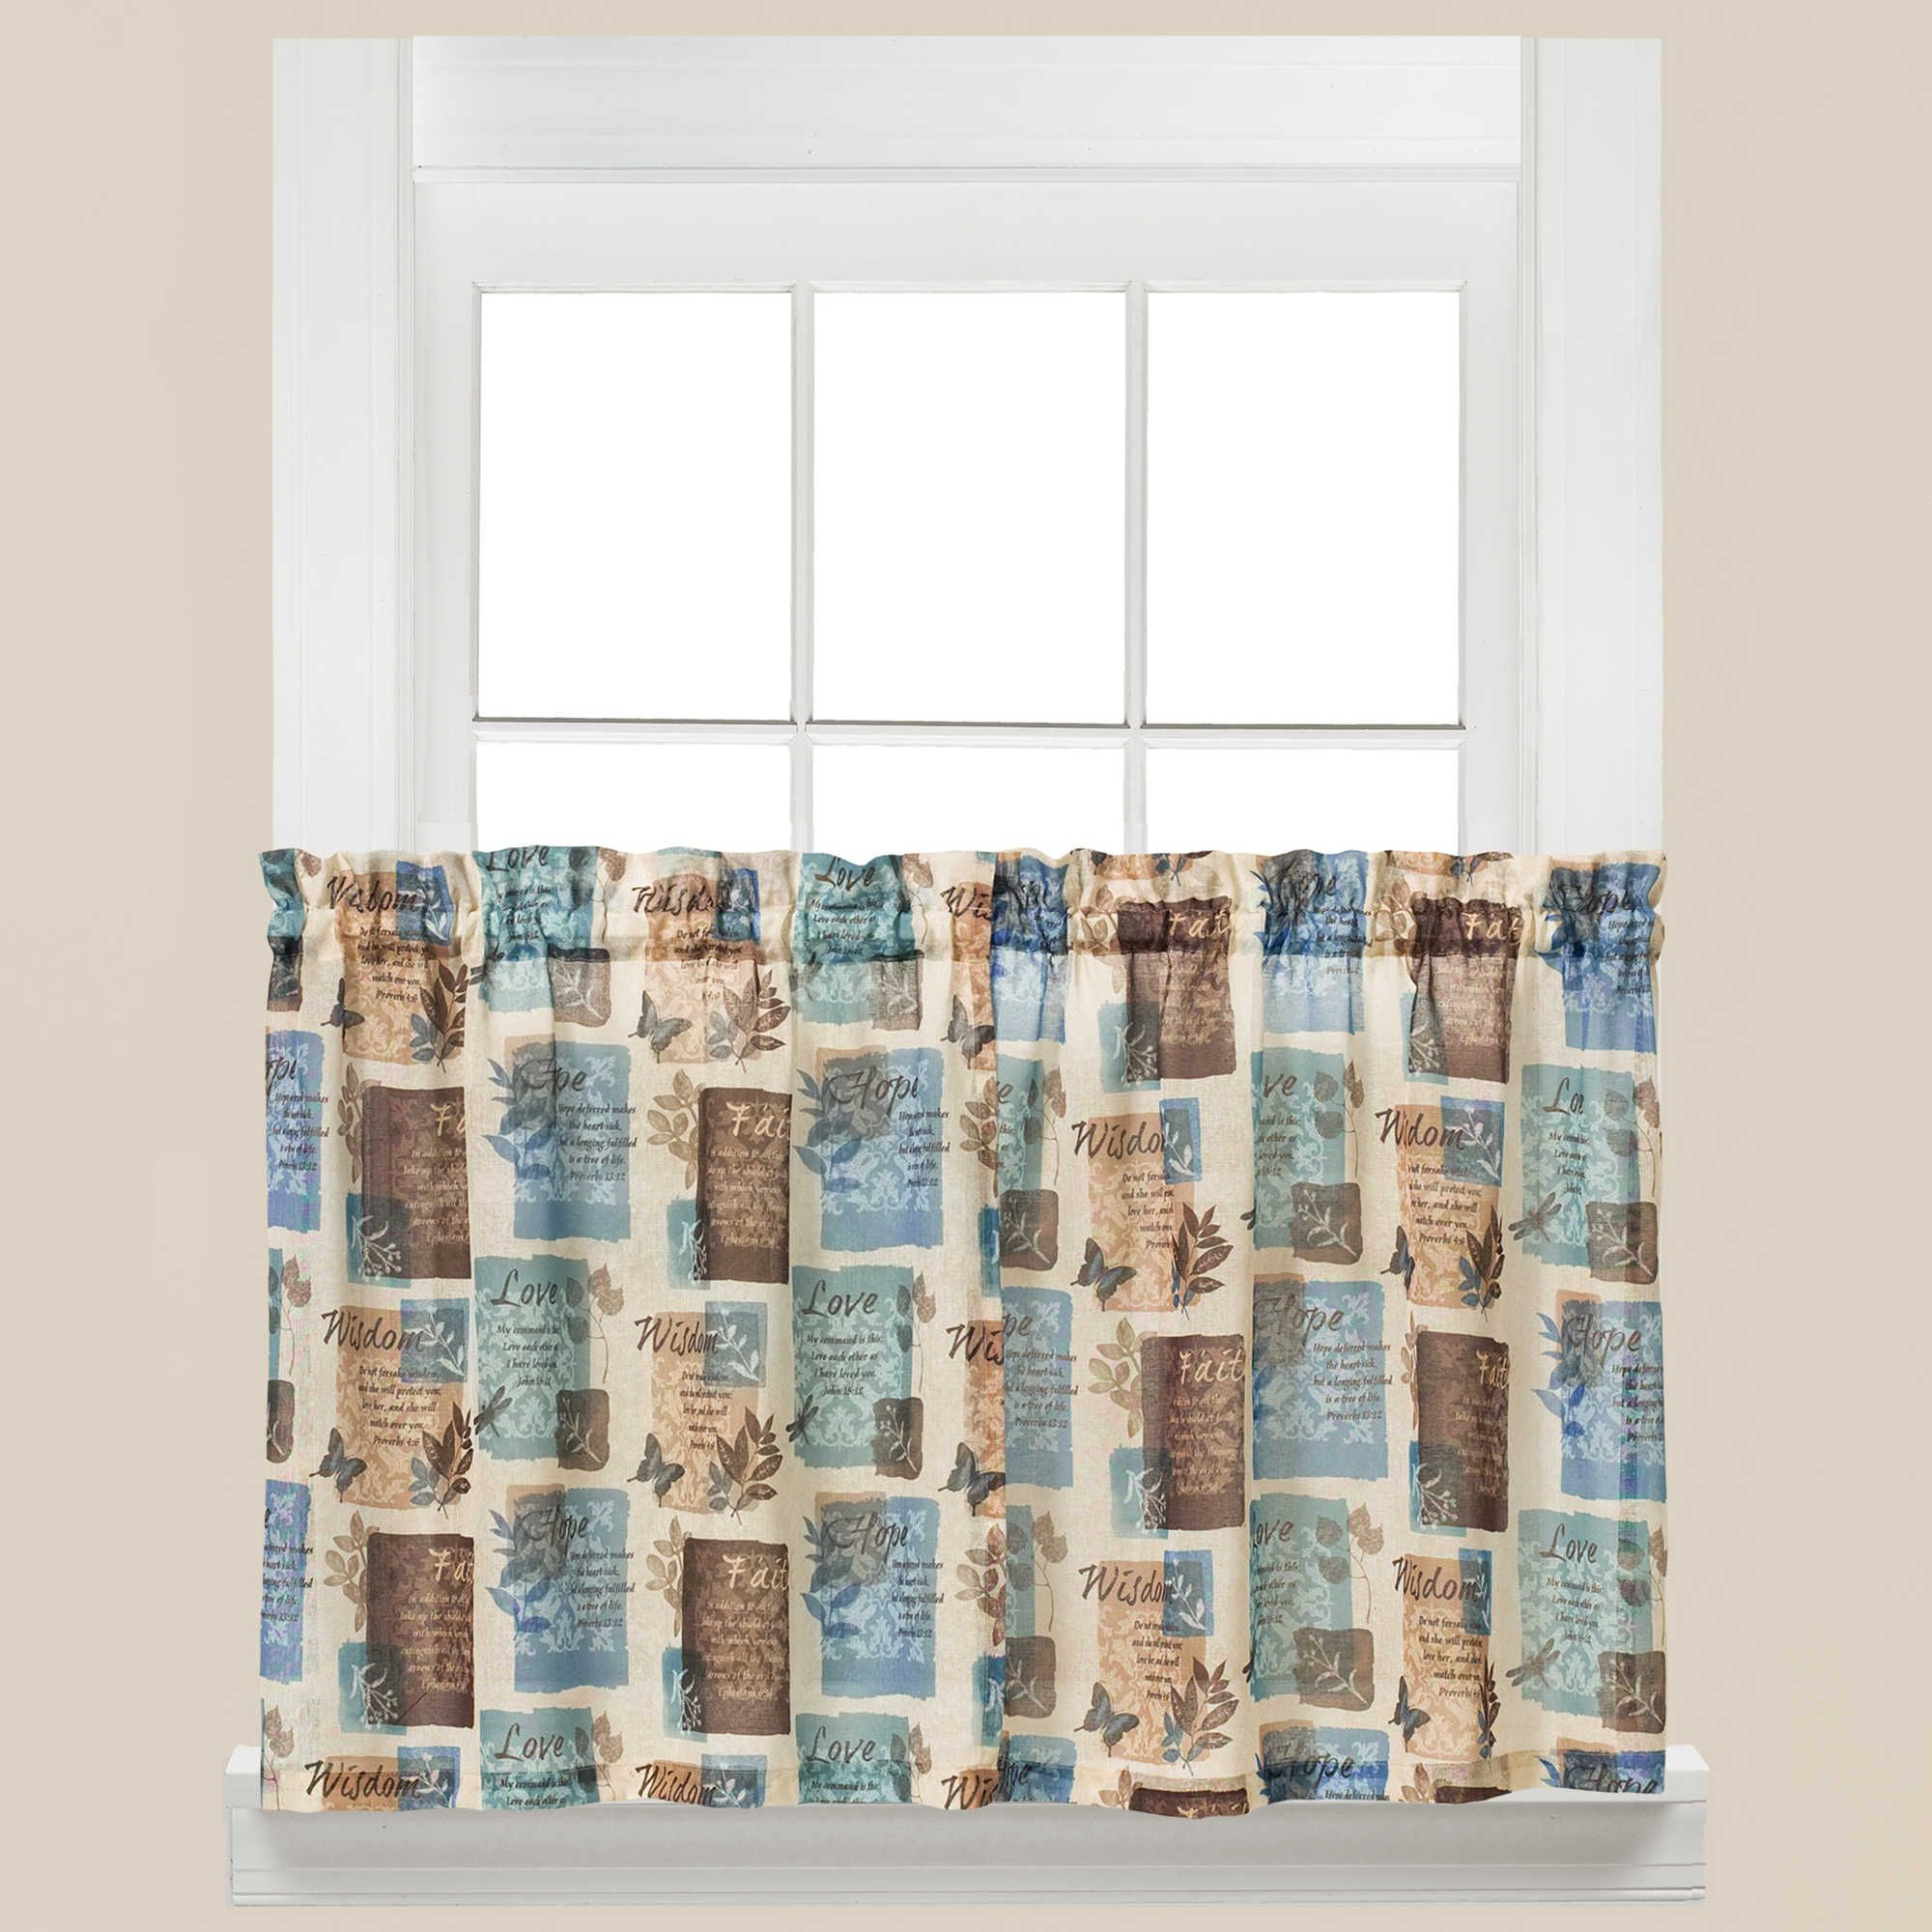 Adorn Your Kitchen With Quotes Of Wisdom Love Faith And Hope With The Faith Kitchen Window Curtain Tier Pai Curtains Kitchen Window Curtains Window Curtains